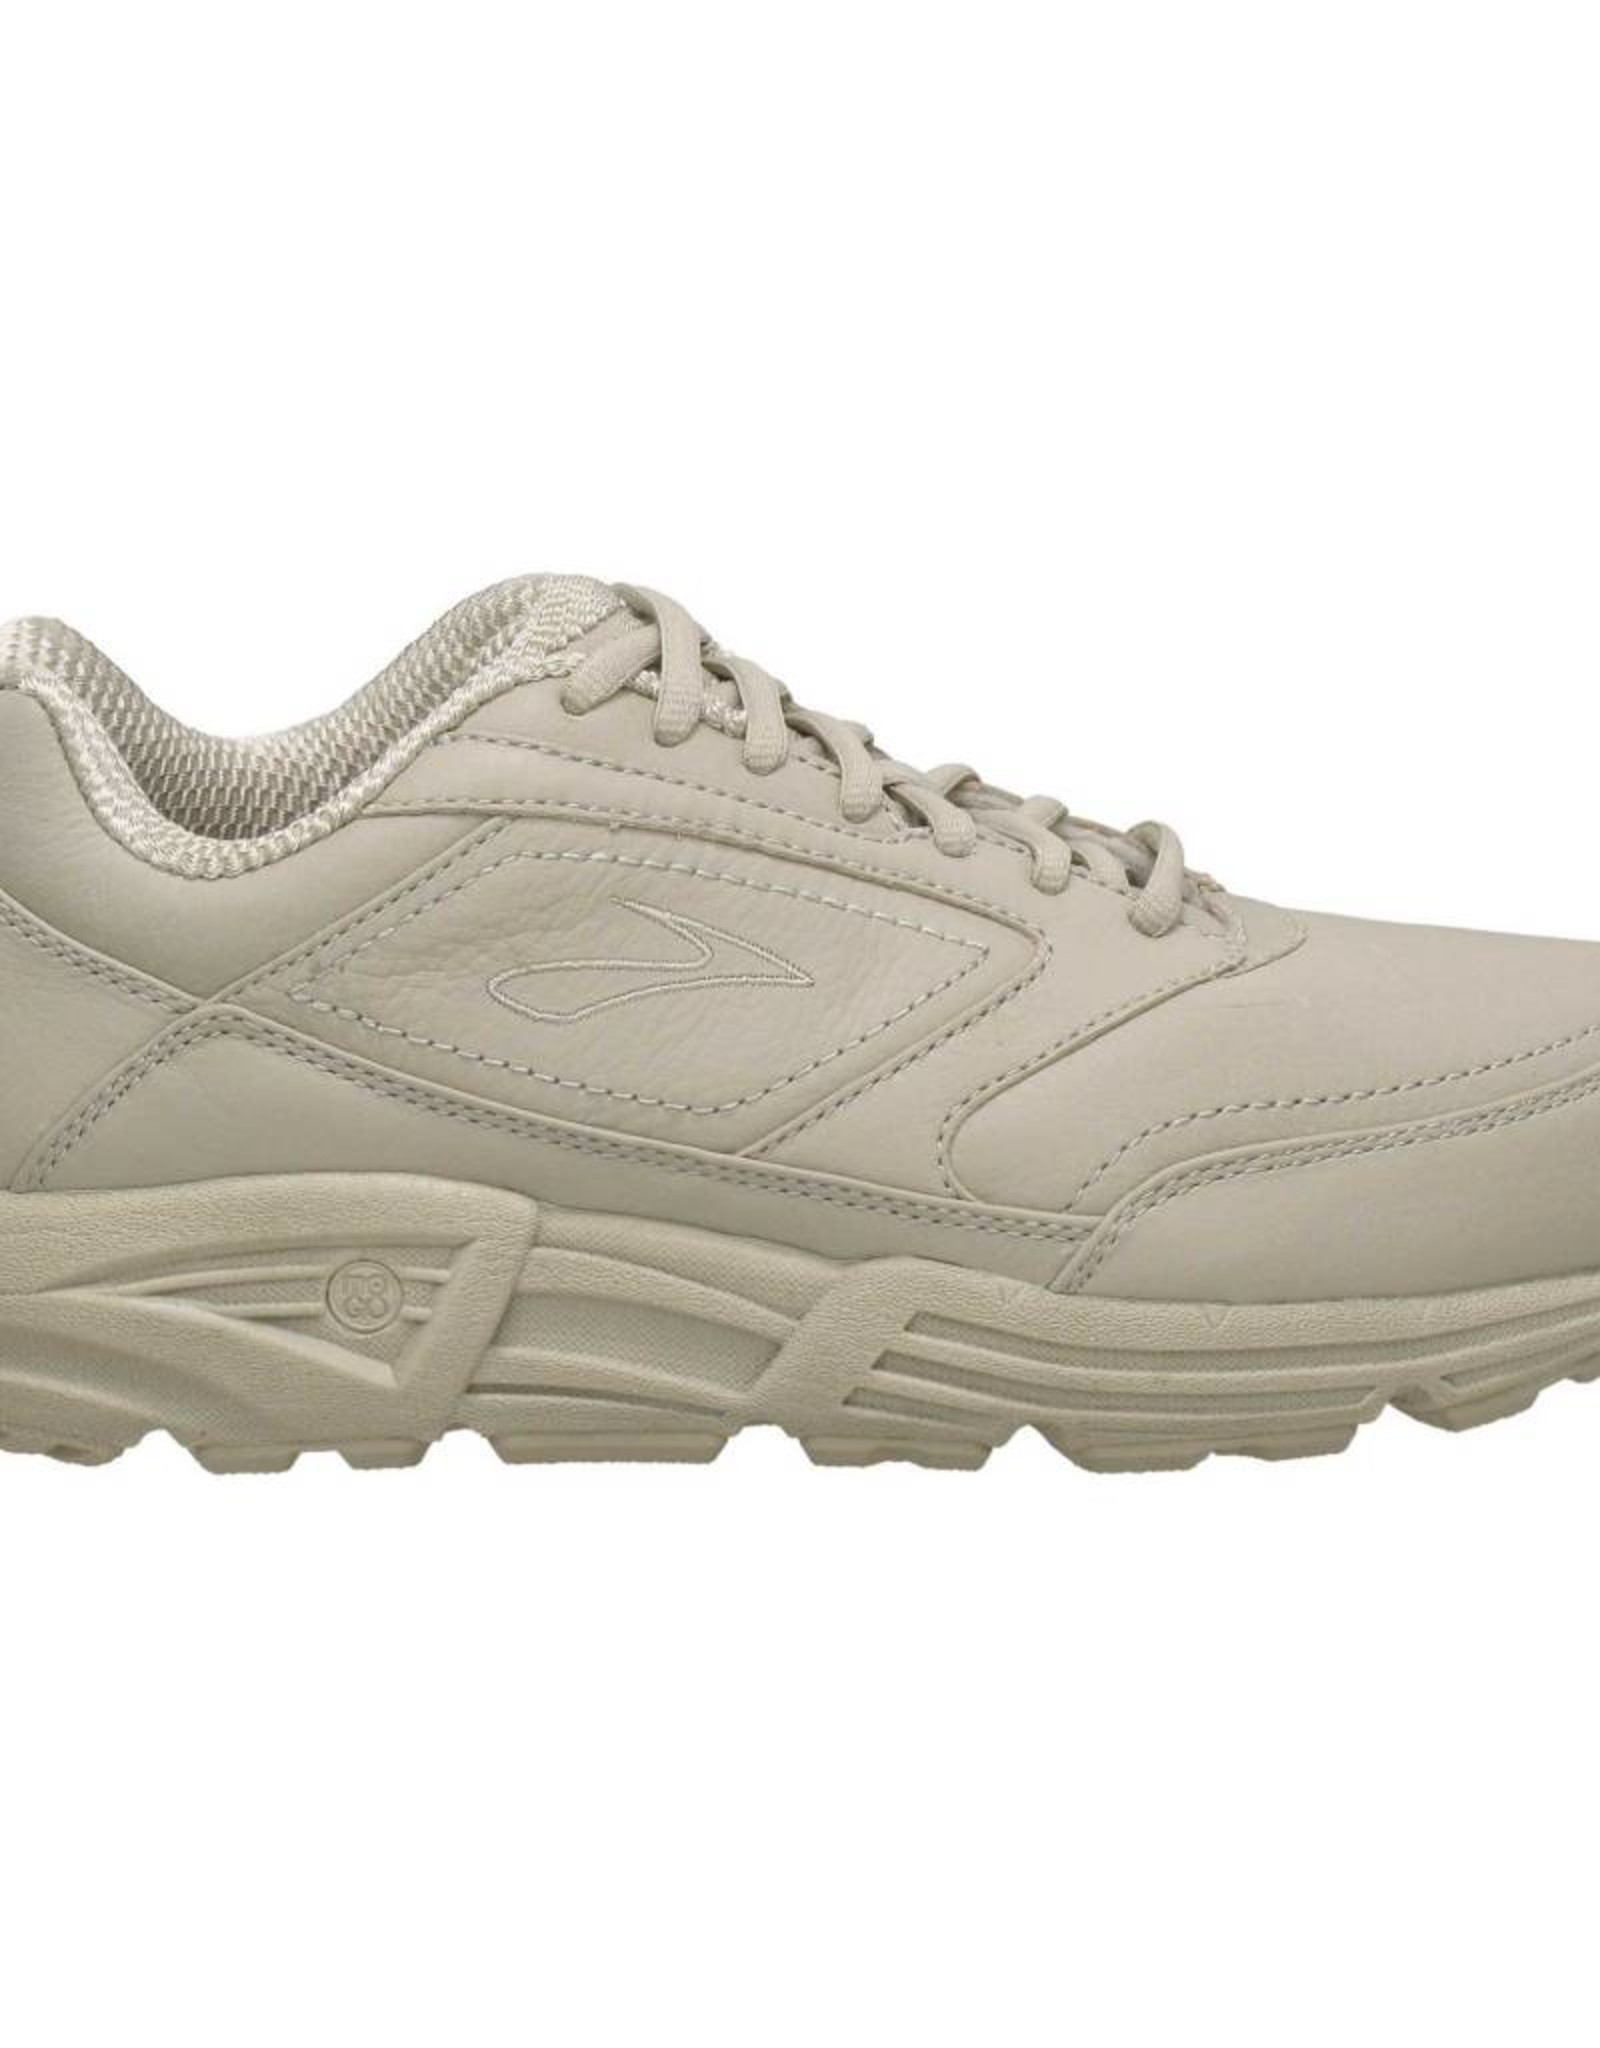 BROOKS WMNS ADDICTION WALKER